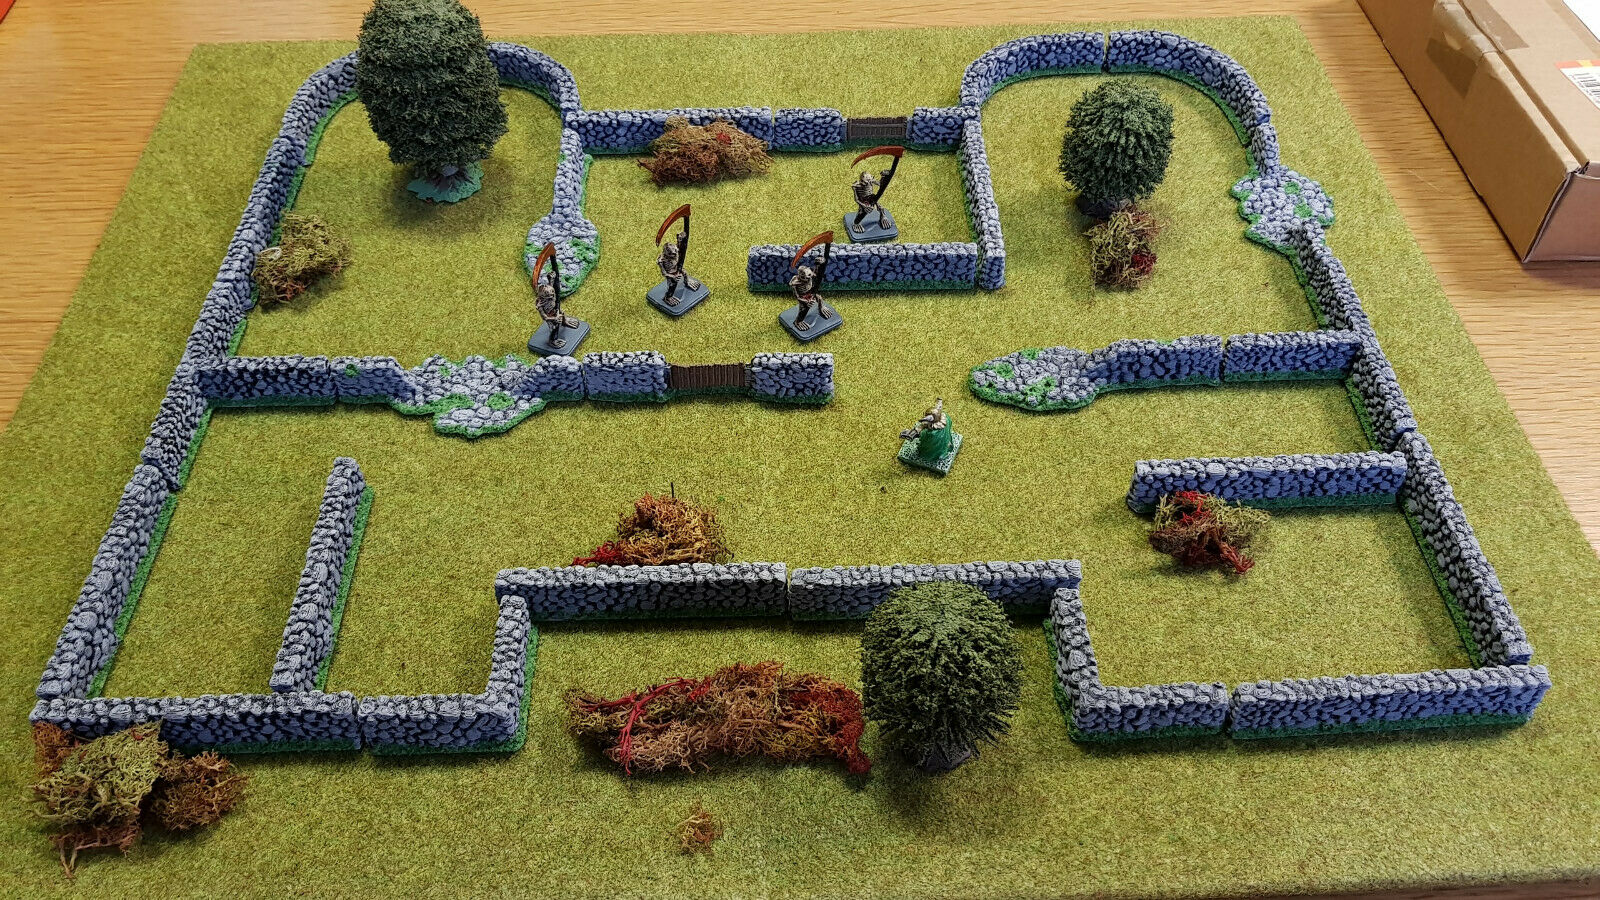 26 x 28mm Stone Walls for Table Top Wargames Warhammer Frostgrave Mordheim RPG